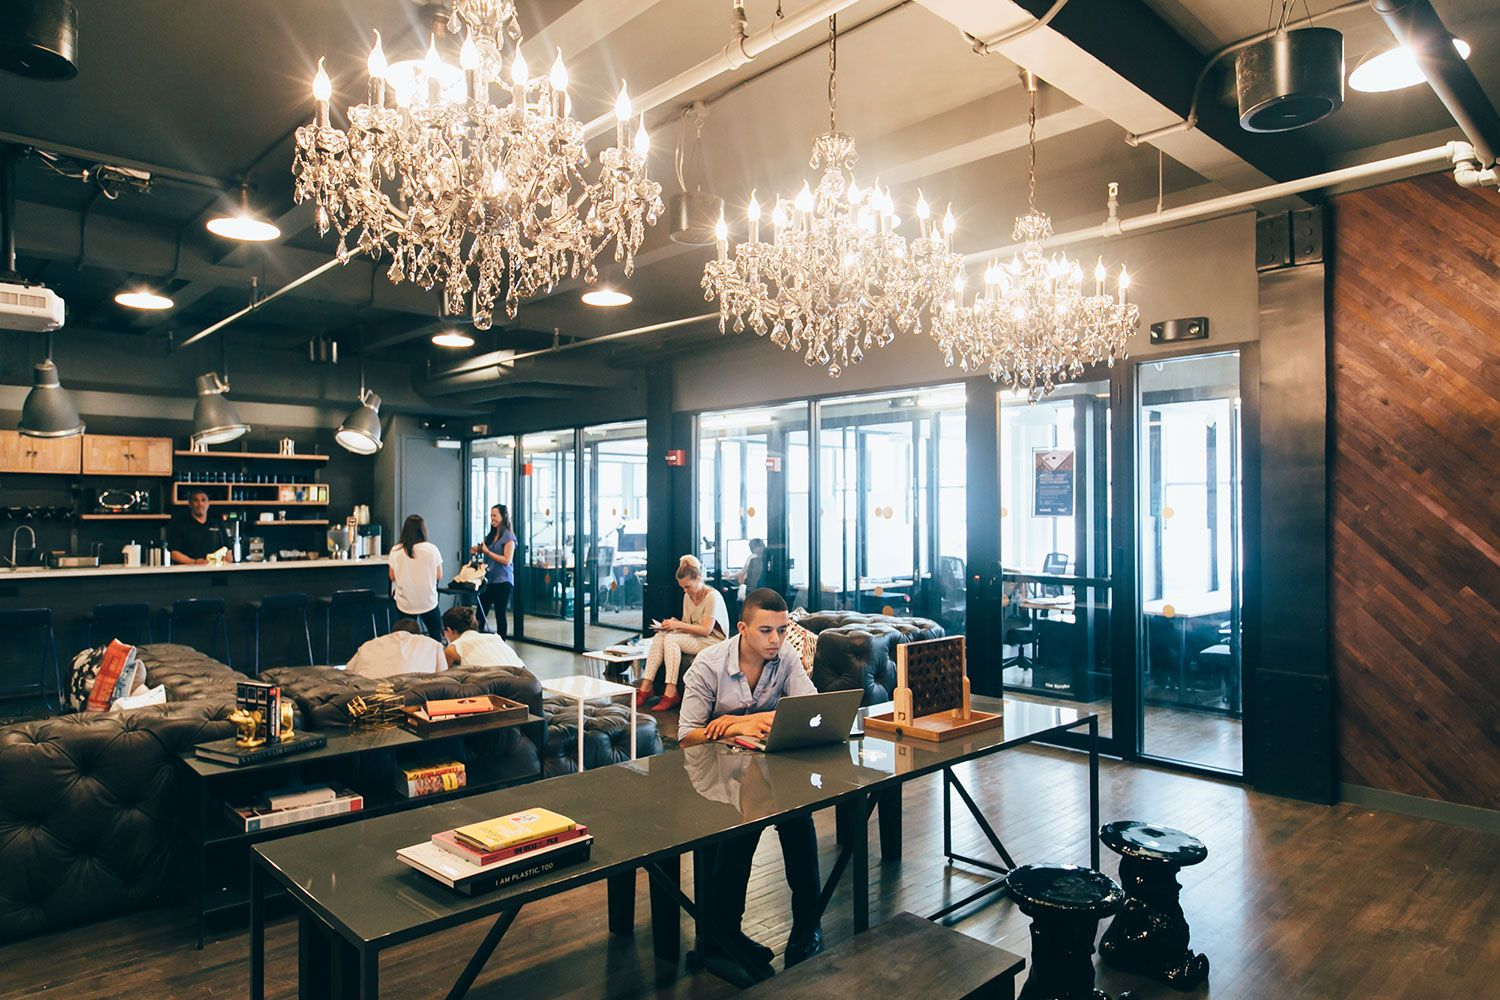 Nyc coworking space google search loft pinterest Coworking space design ideas